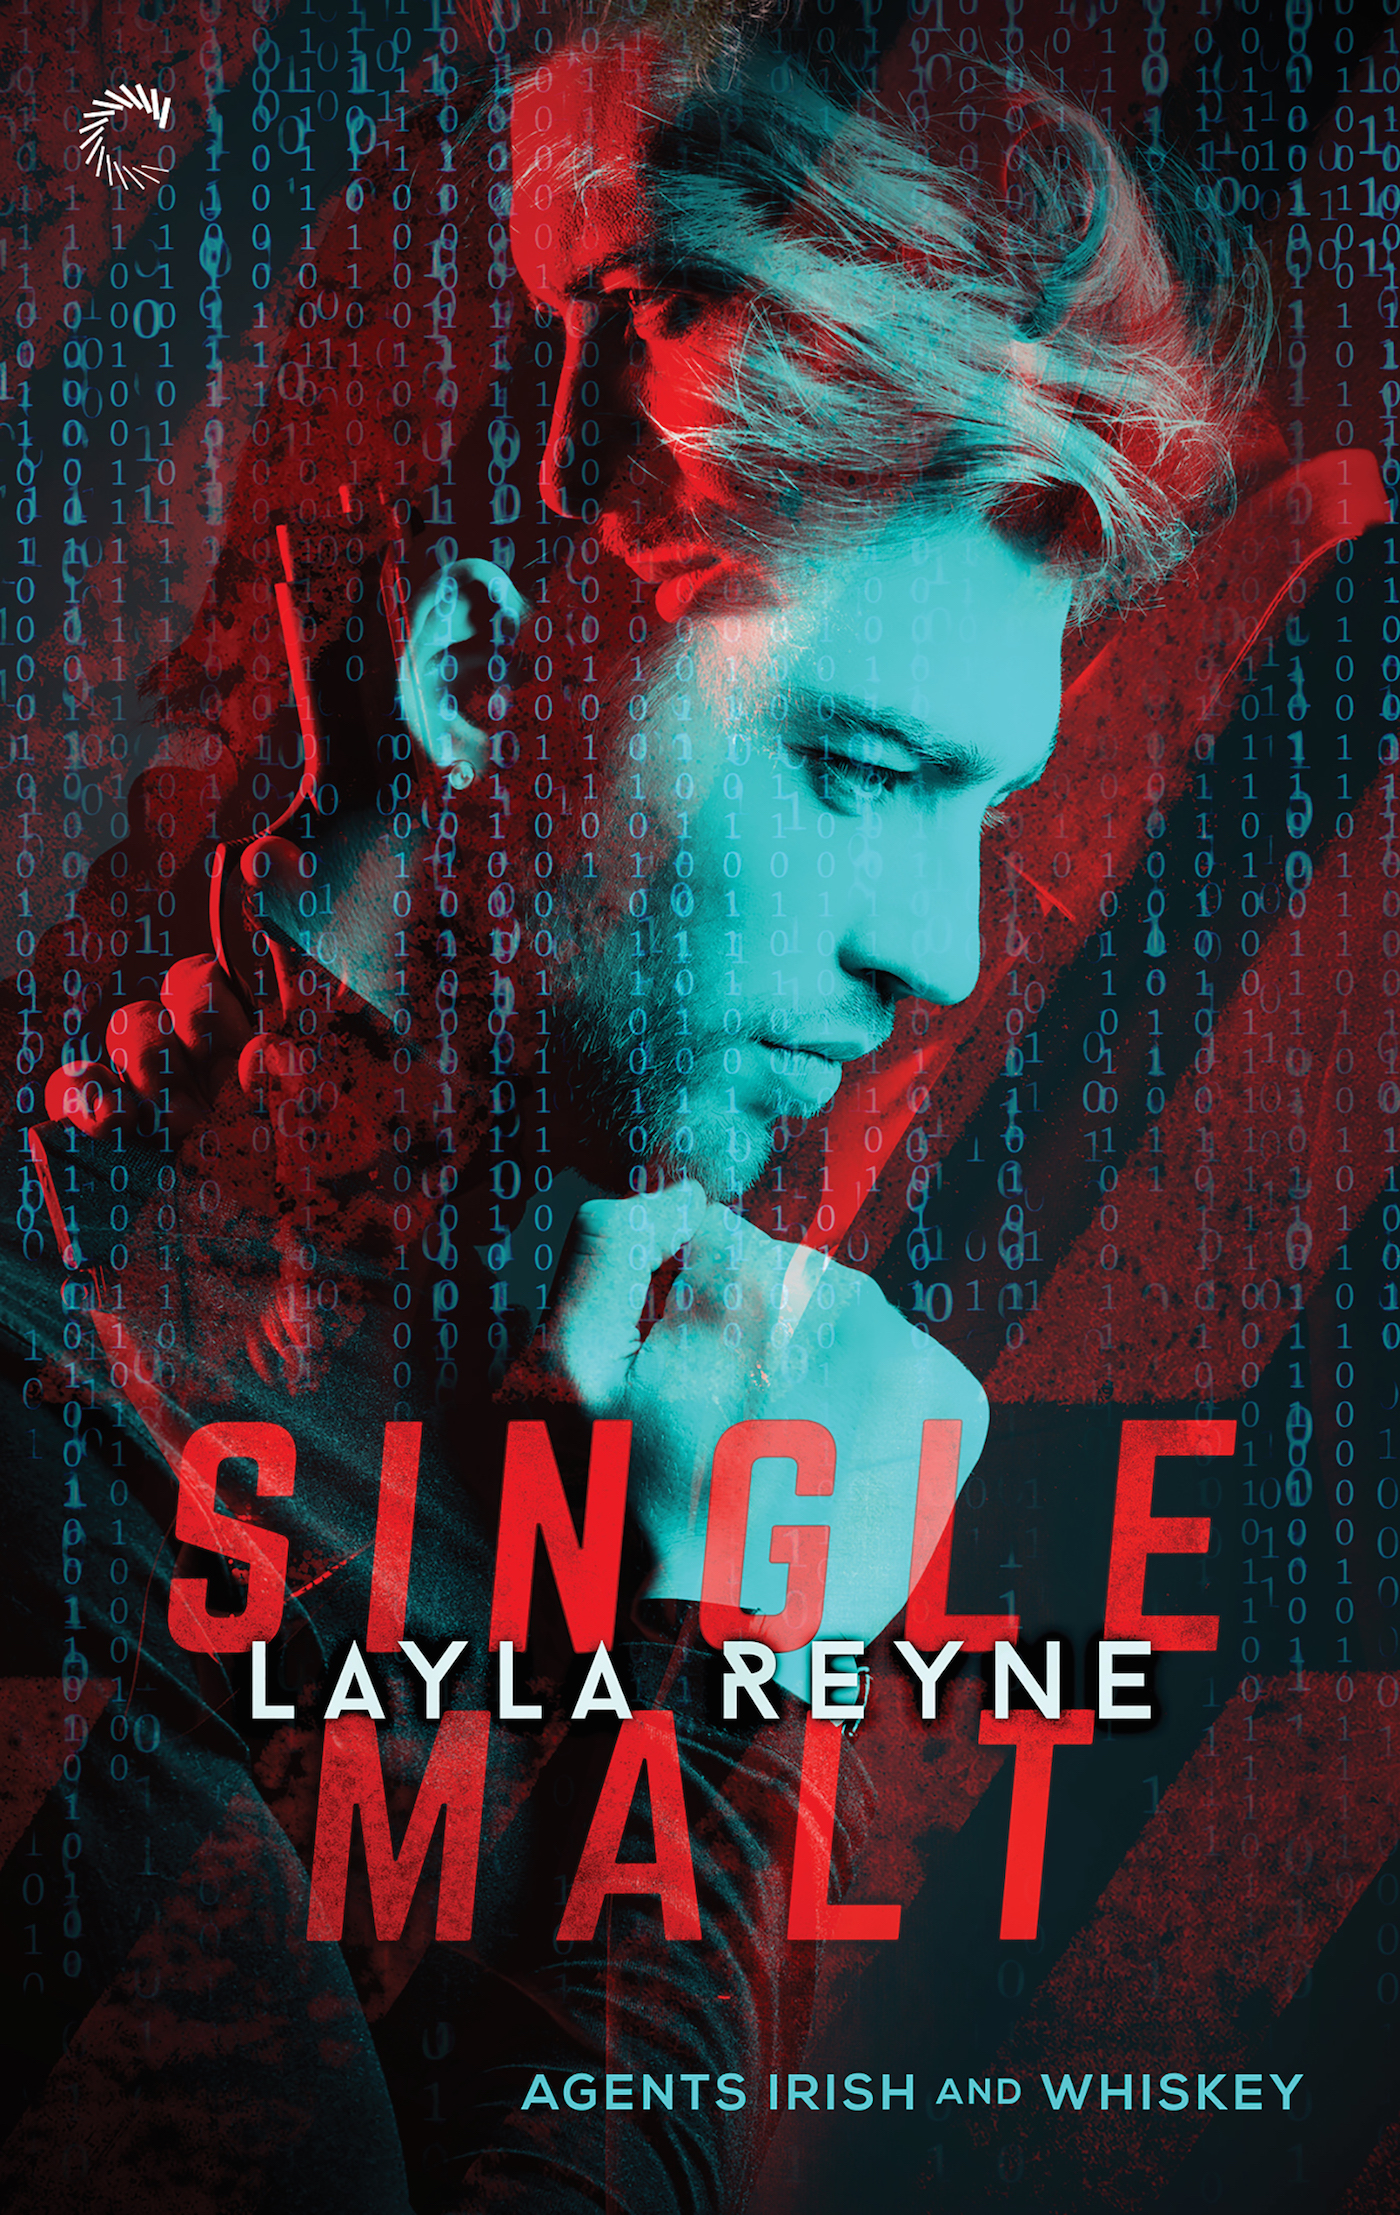 Guest Post and Giveaway: Single Malt by Layla Reyne